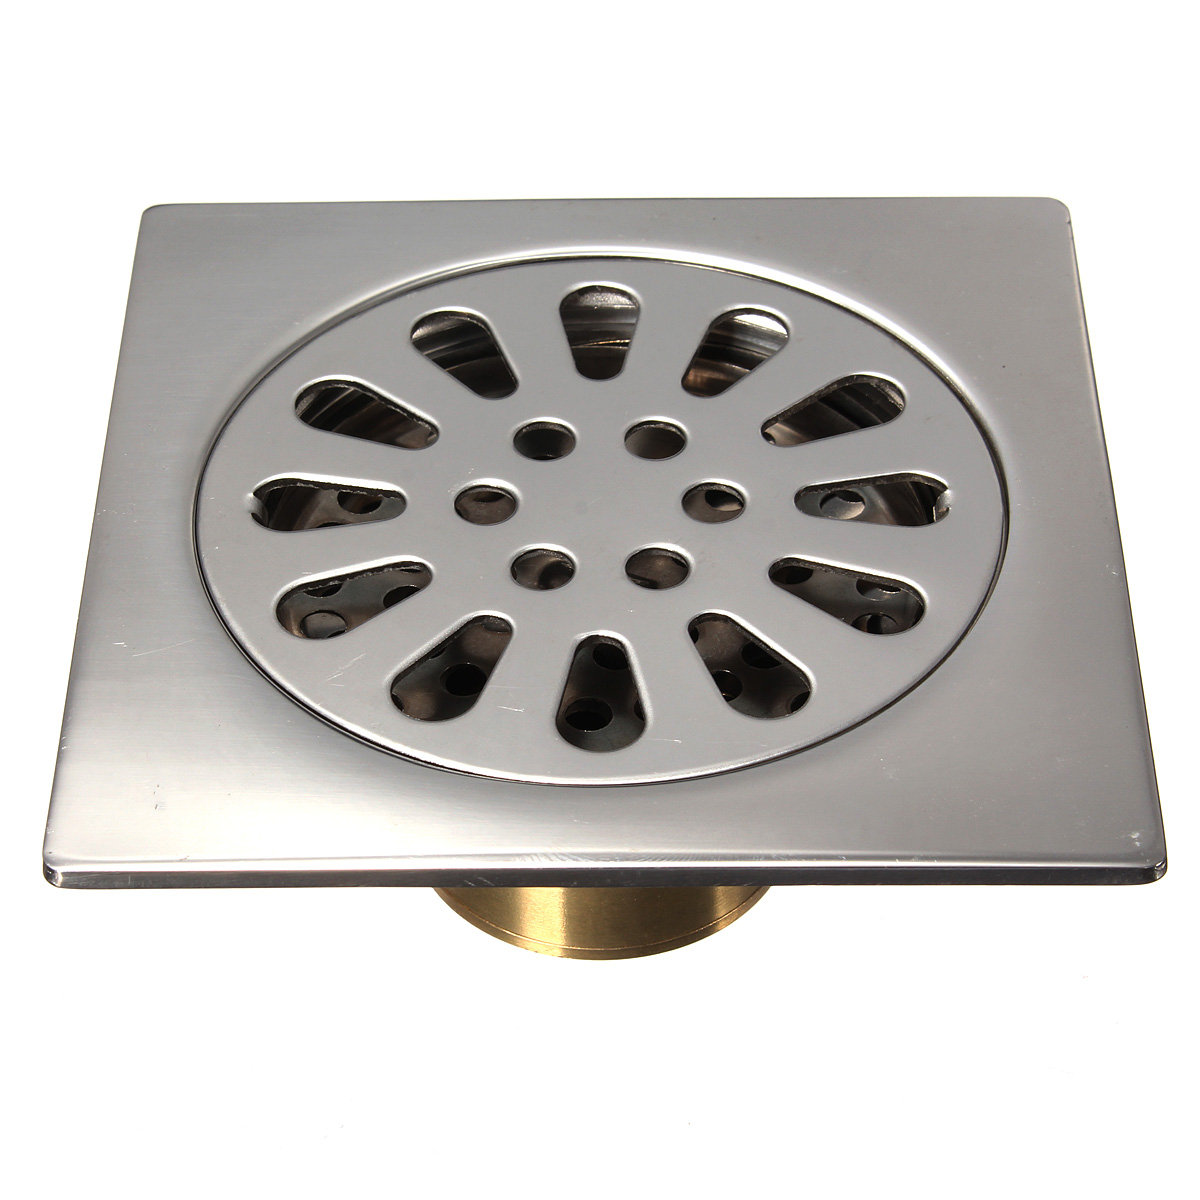 Bathroom Floor Drain Strainer : Floor shower drain bathroom stopper strainer filter